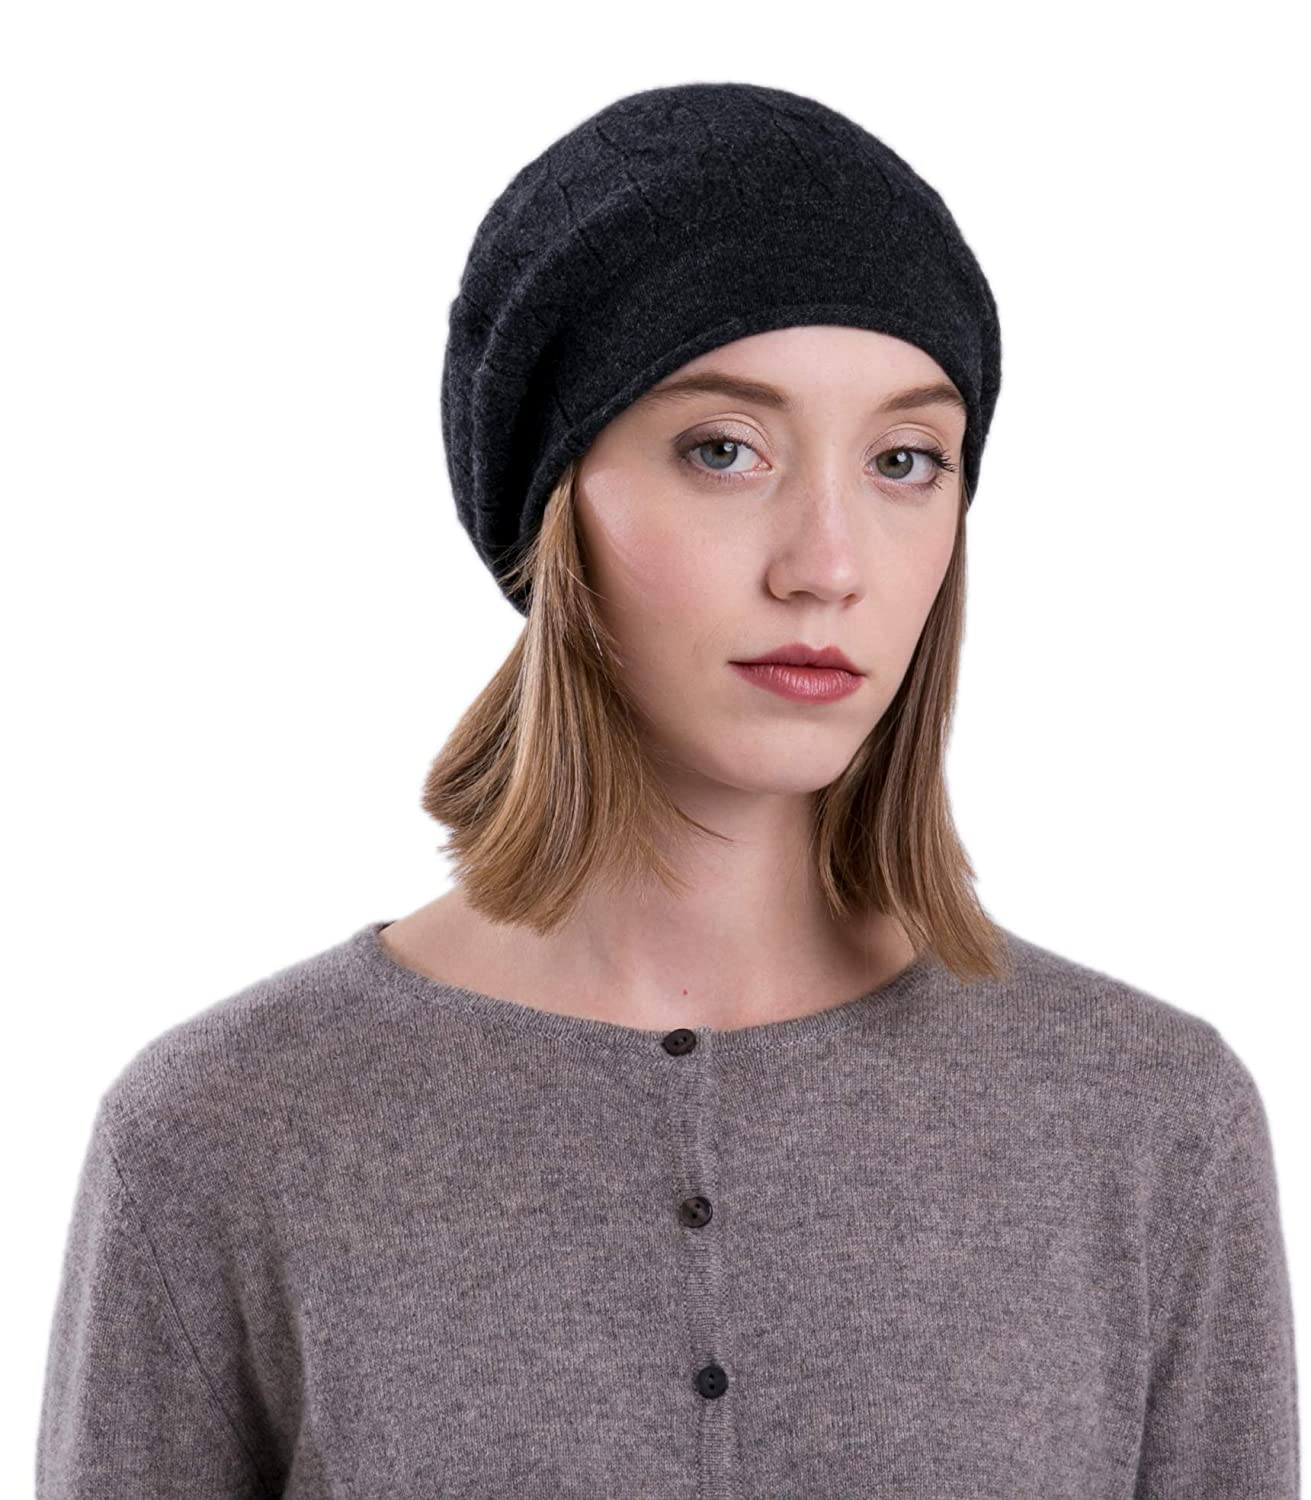 Charcoal LEBAC 100% Cashmere Hat Cable Knit Beanie